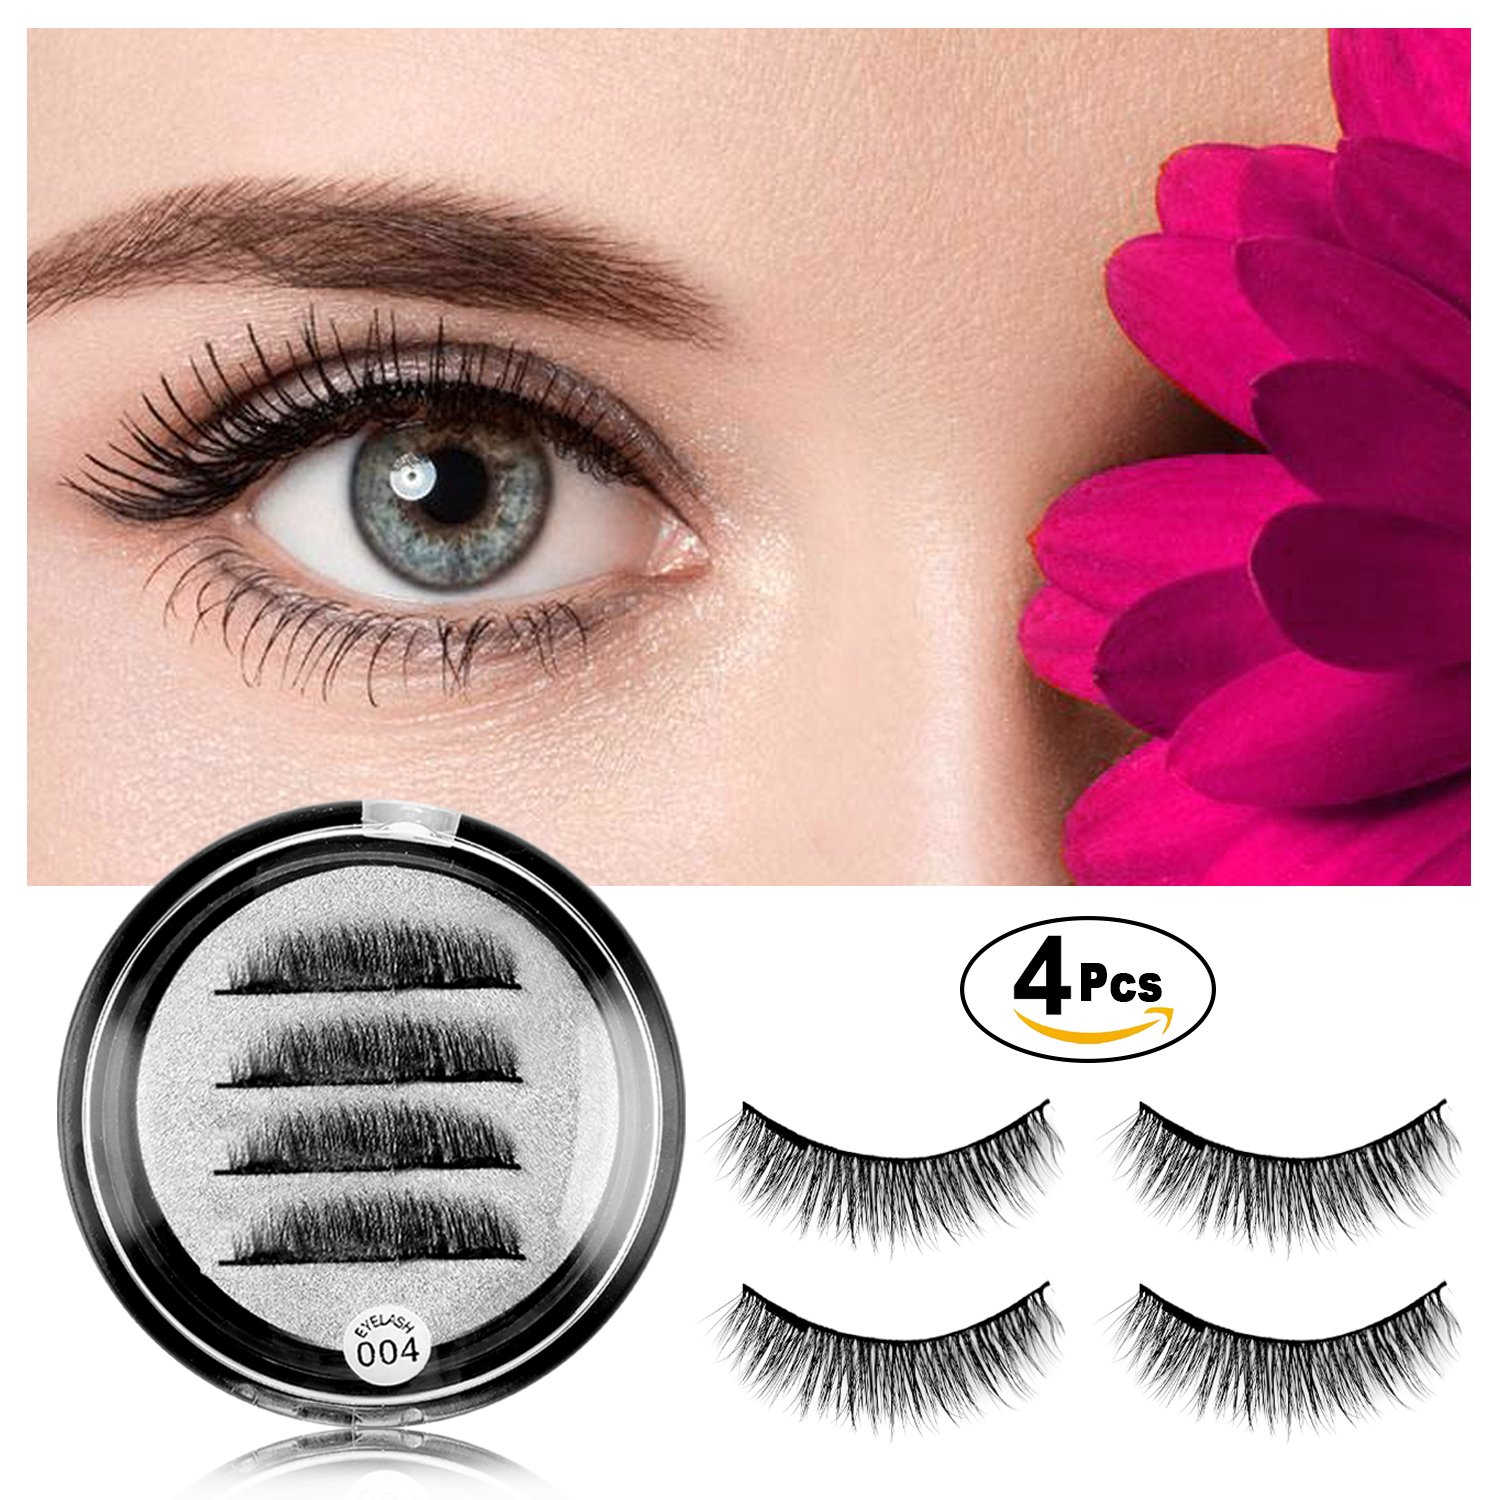 Magnetic Eyelashes No Glue - Dual Magnets Natural False Eyelashes - 3D Reusable Full Eye Fake Lashes Extensions - Thick Soft & Handmade Seconds to Apply 1 pair/4 pcs